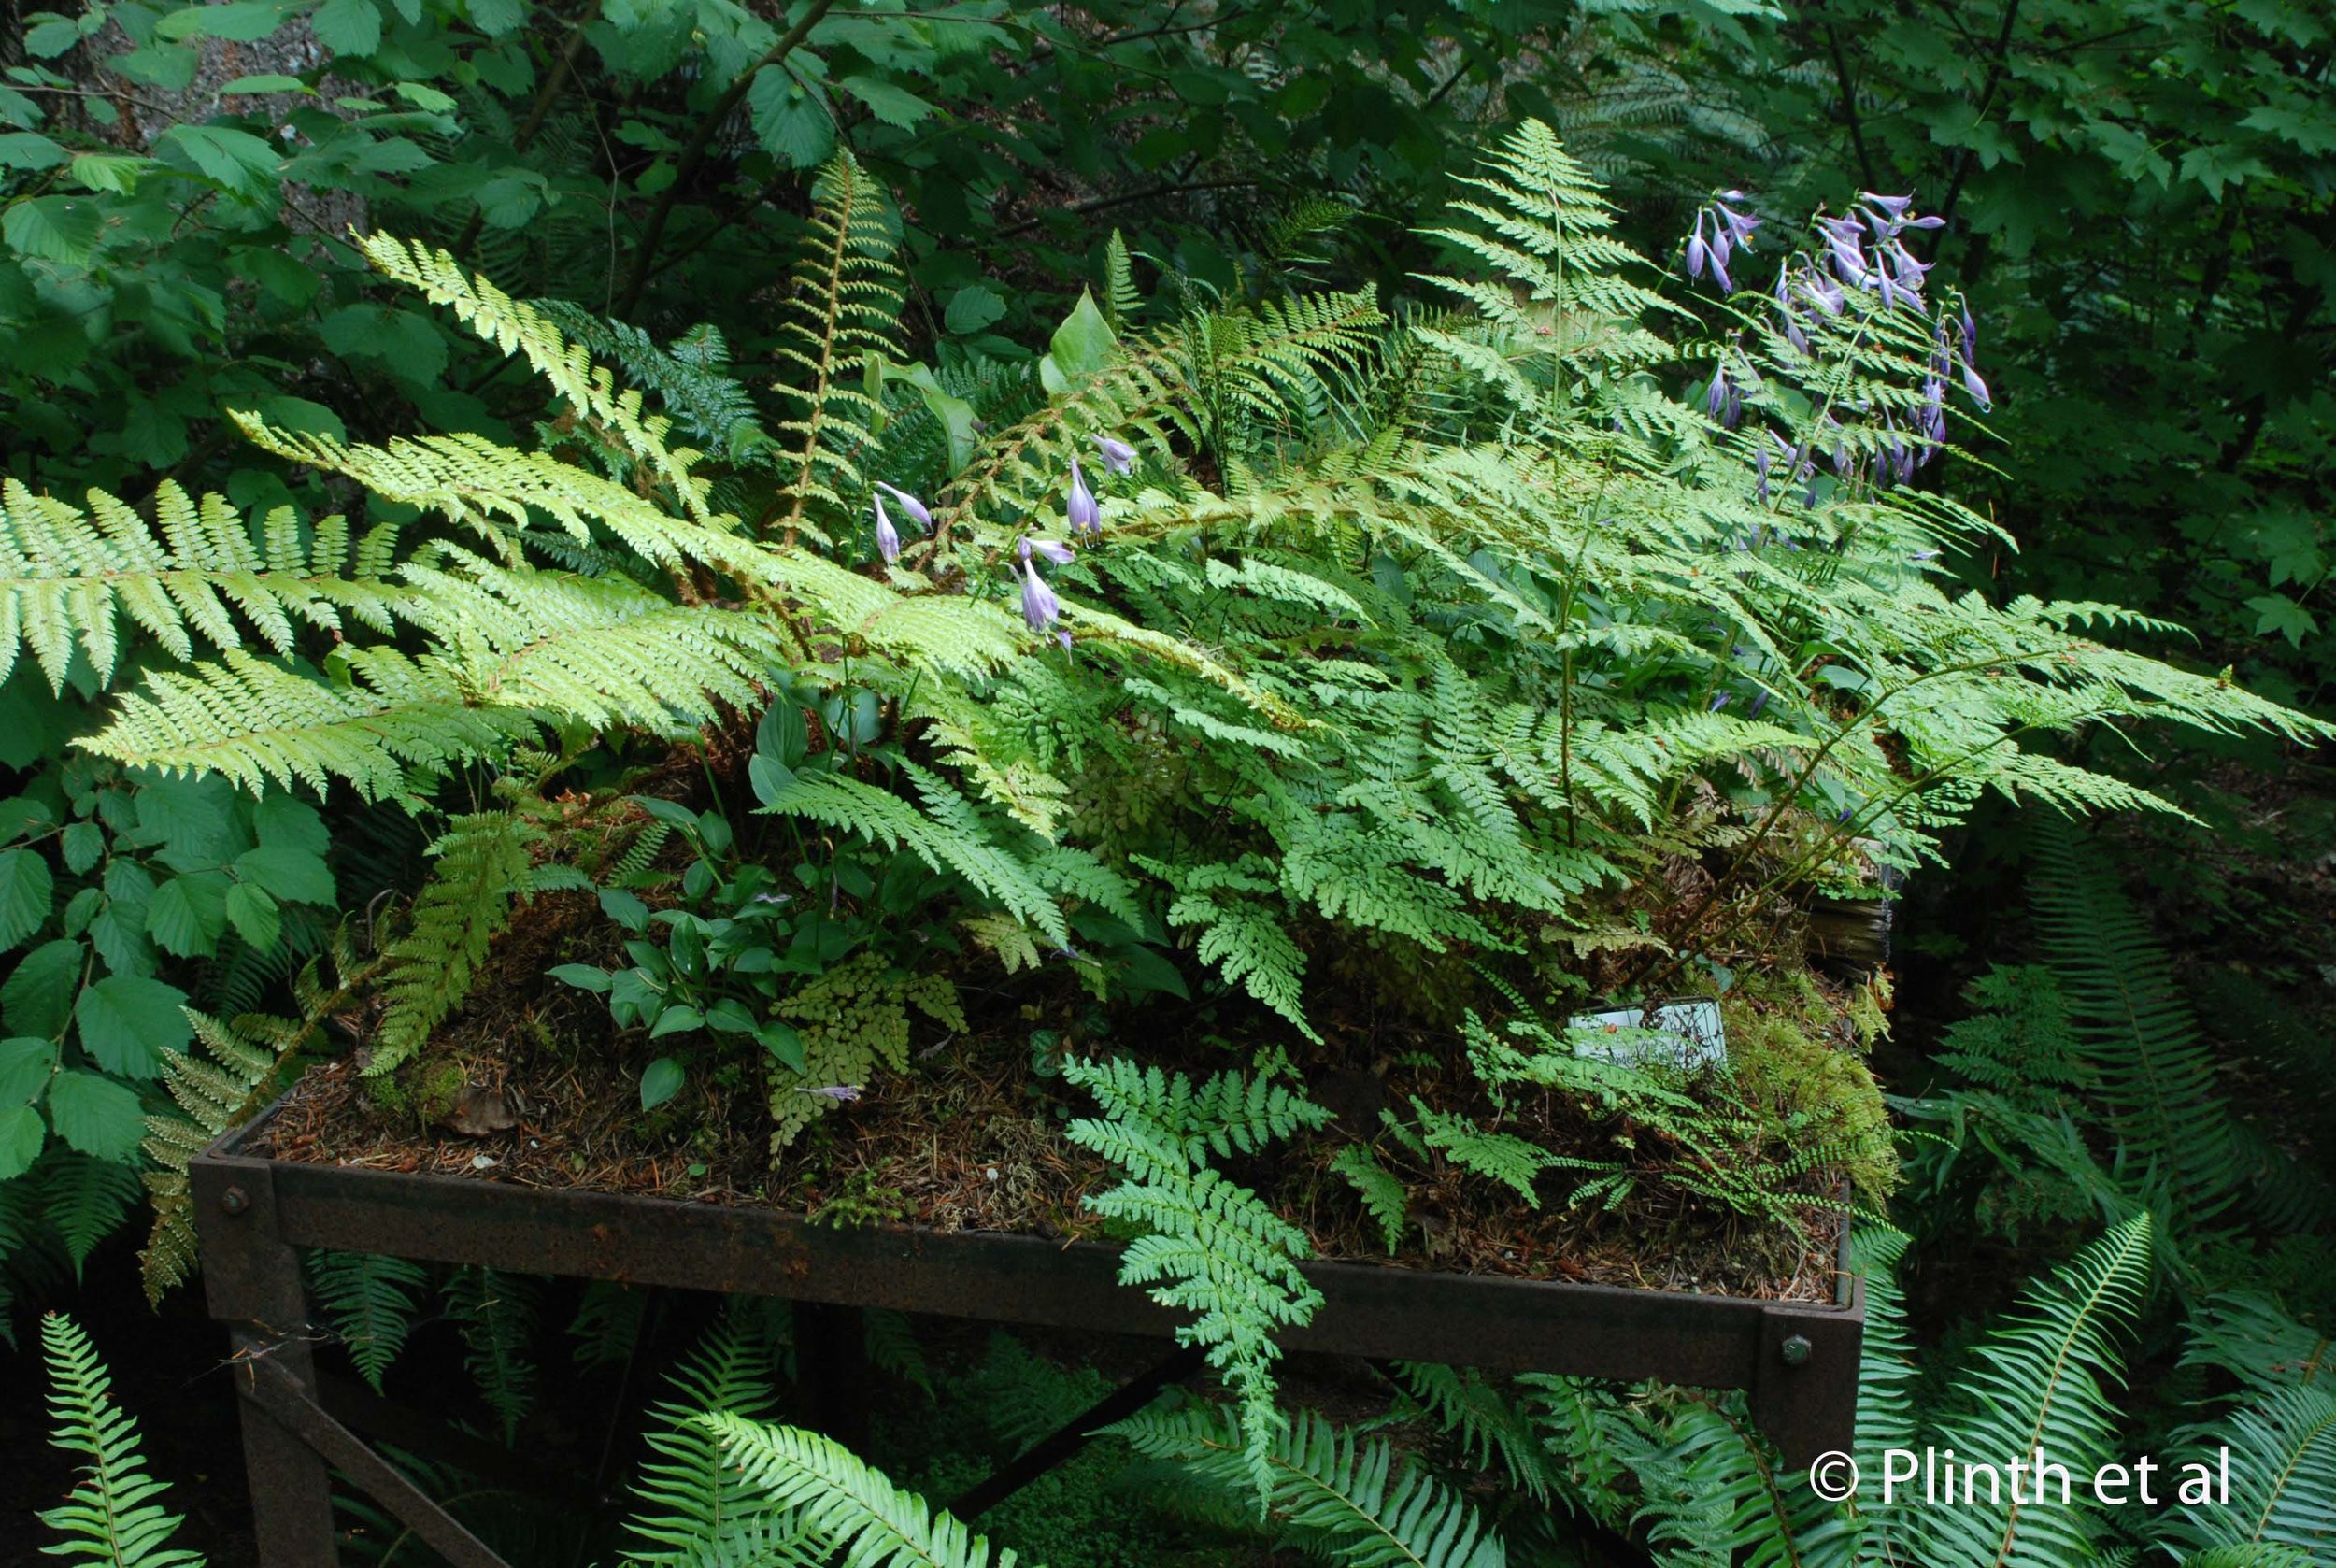 A metal table becomes a raised tableau of ferns, hostas, and mosses.